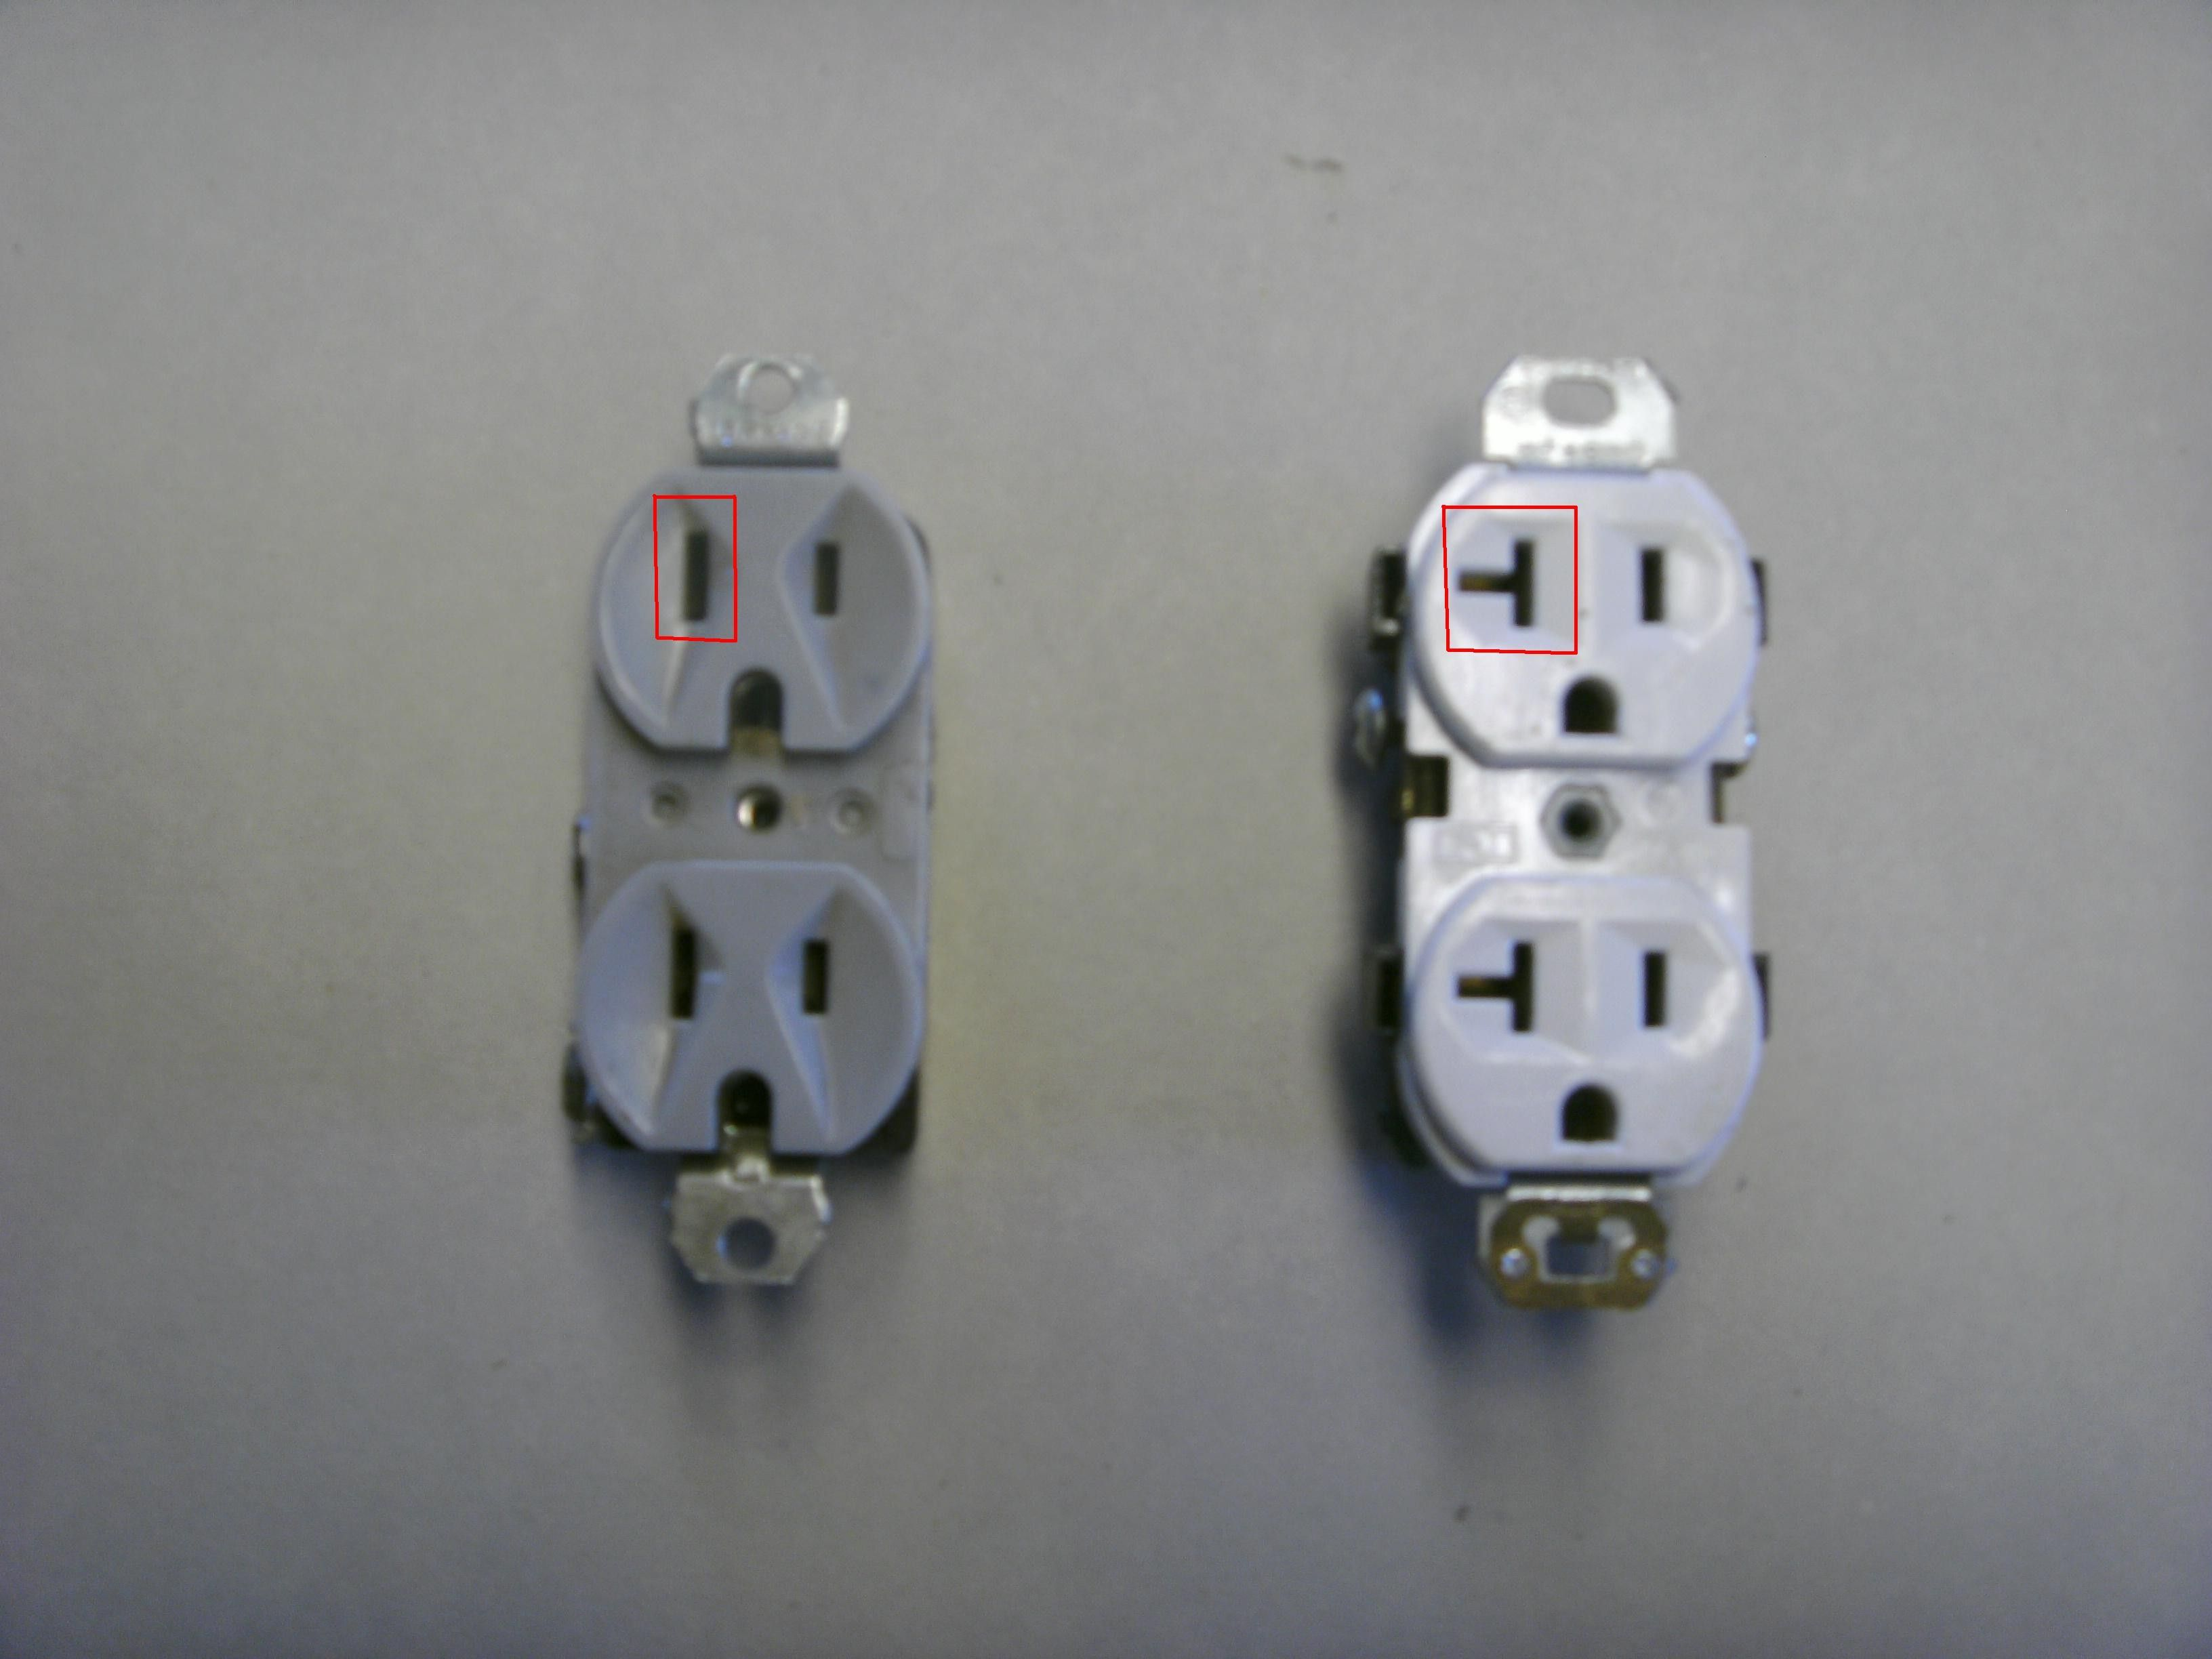 Famous Bulldog Security Wiring Big 3 Pickup Les Paul Wiring Diagram Round Car Alarm Diagram Ibanez Rdgr Bass Old Ibanez Pickup WhiteLes Paul Pickup Wiring Adding Electrical Outlets: How To Wire A New Outlet To An Existing ..